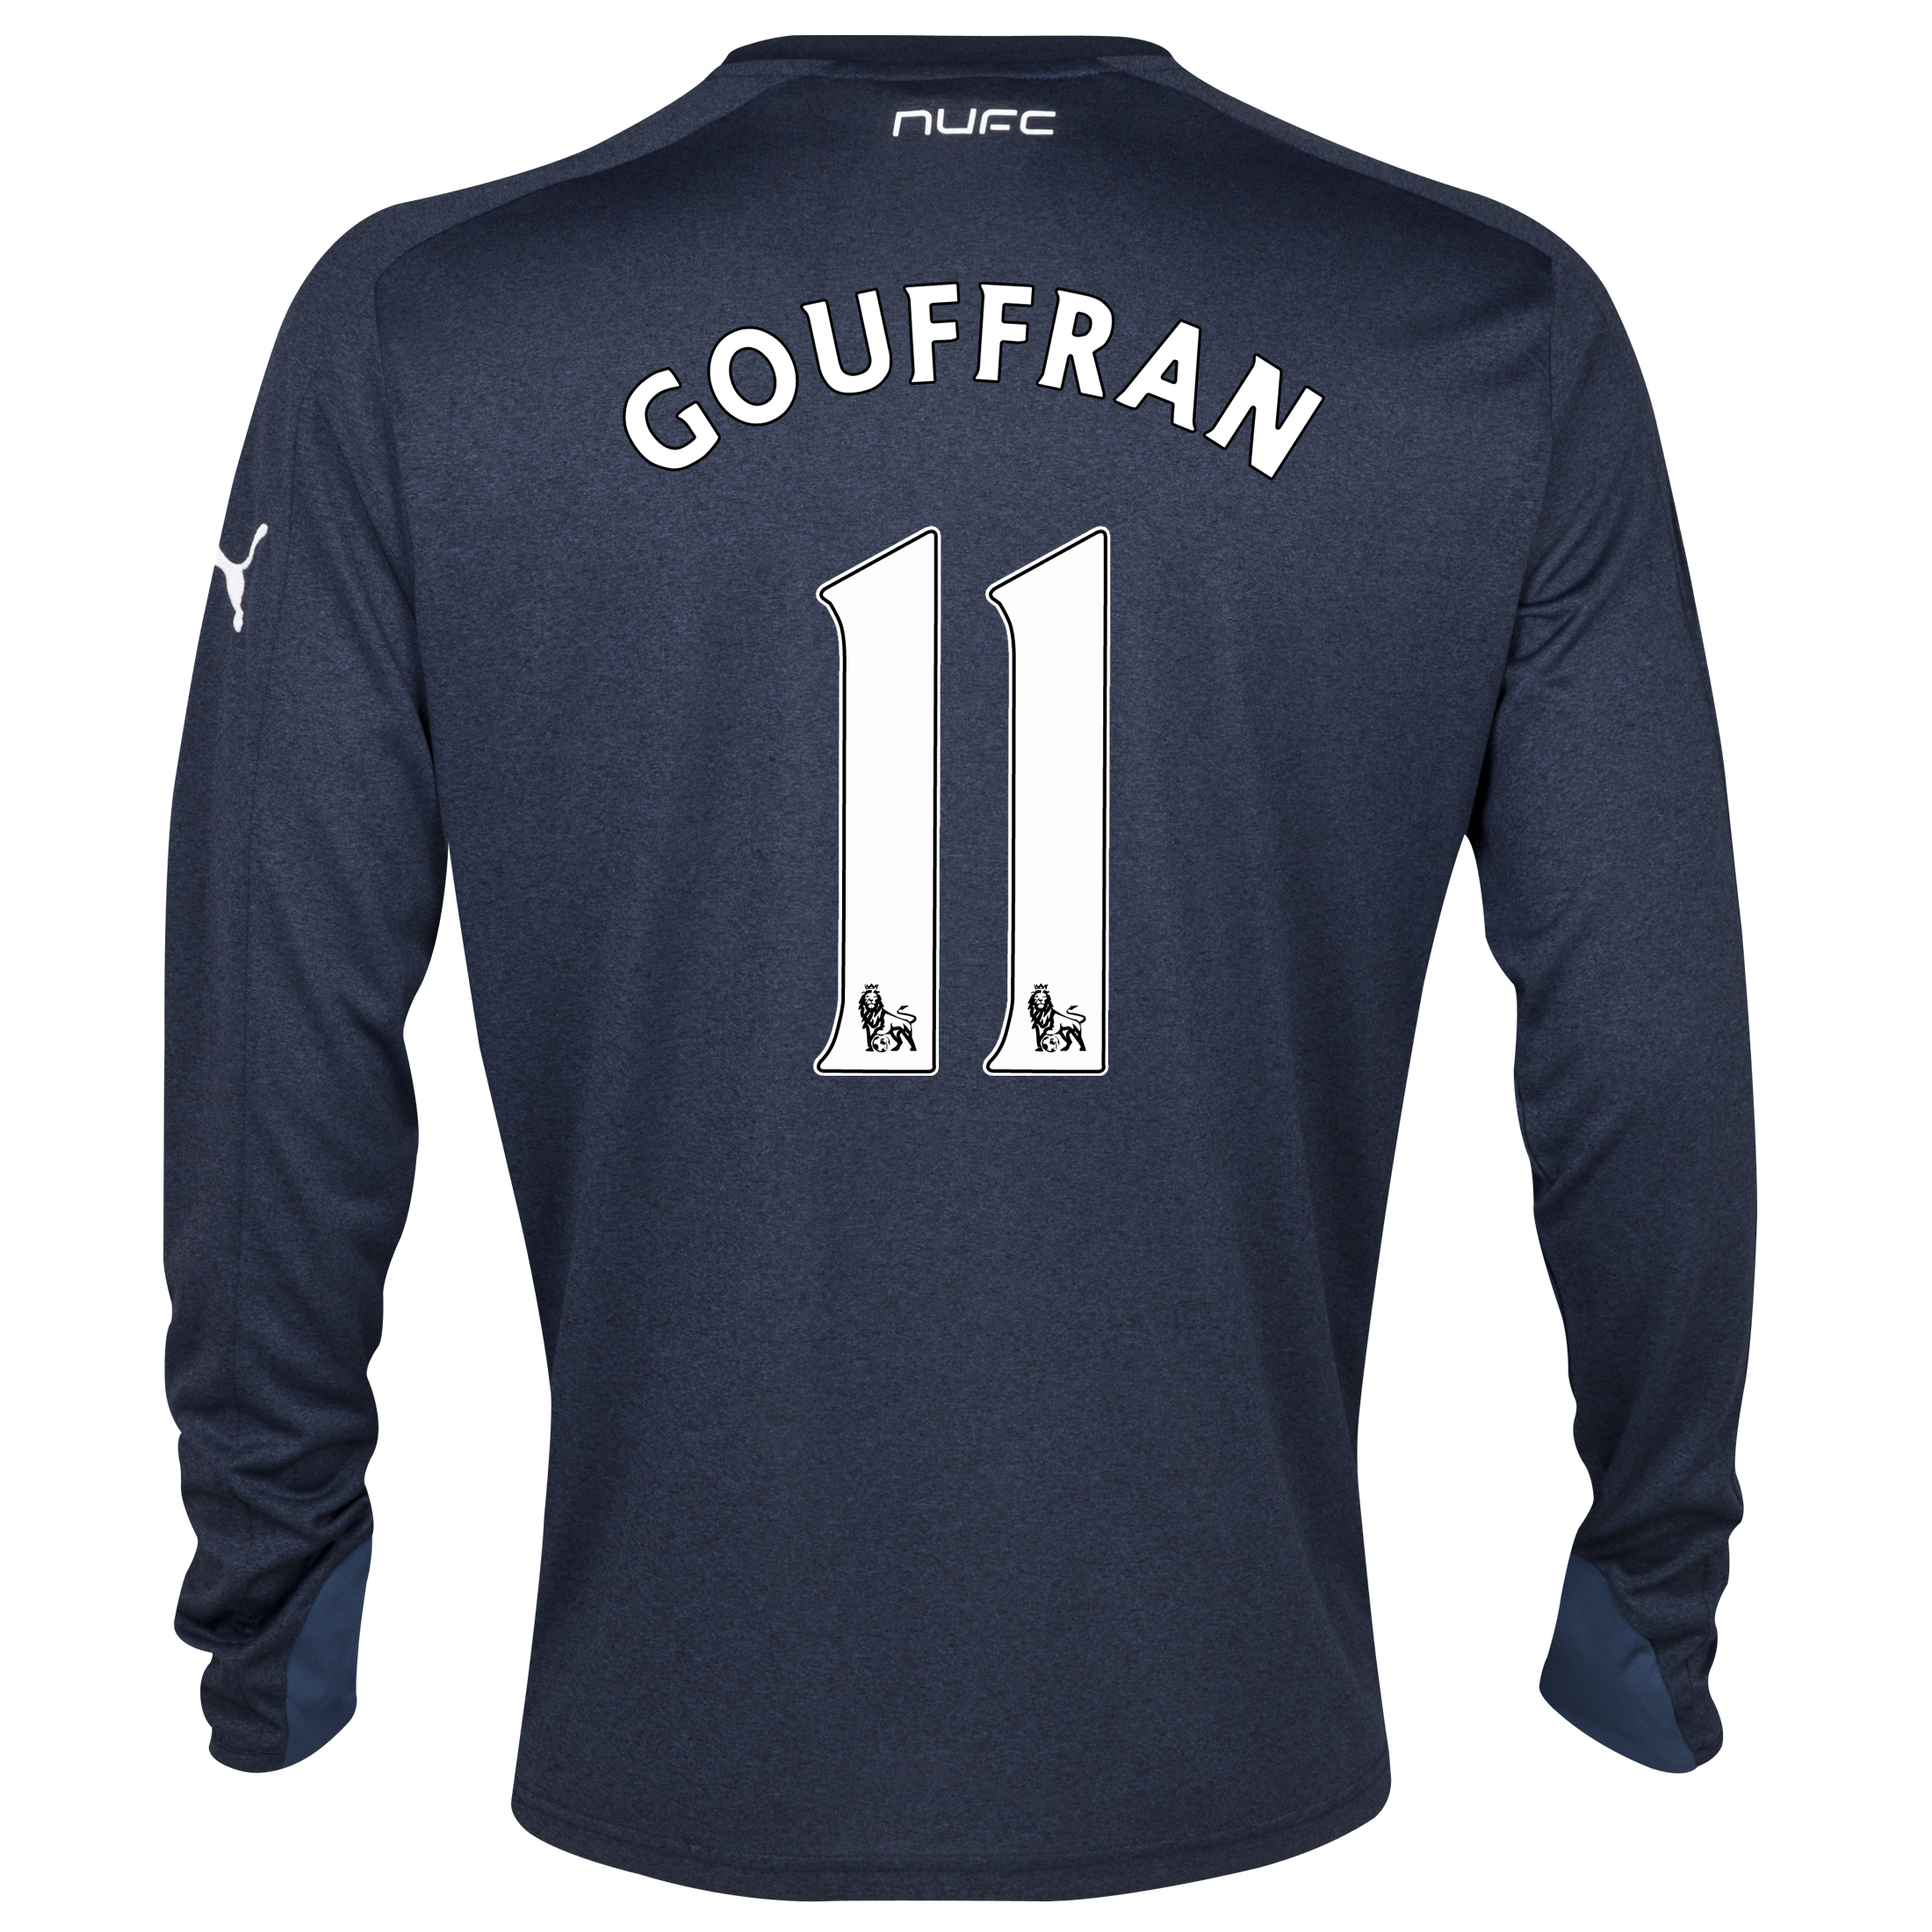 Newcastle United Away Shirt 2013/14- Long Sleeve with Gouffran 11 printing